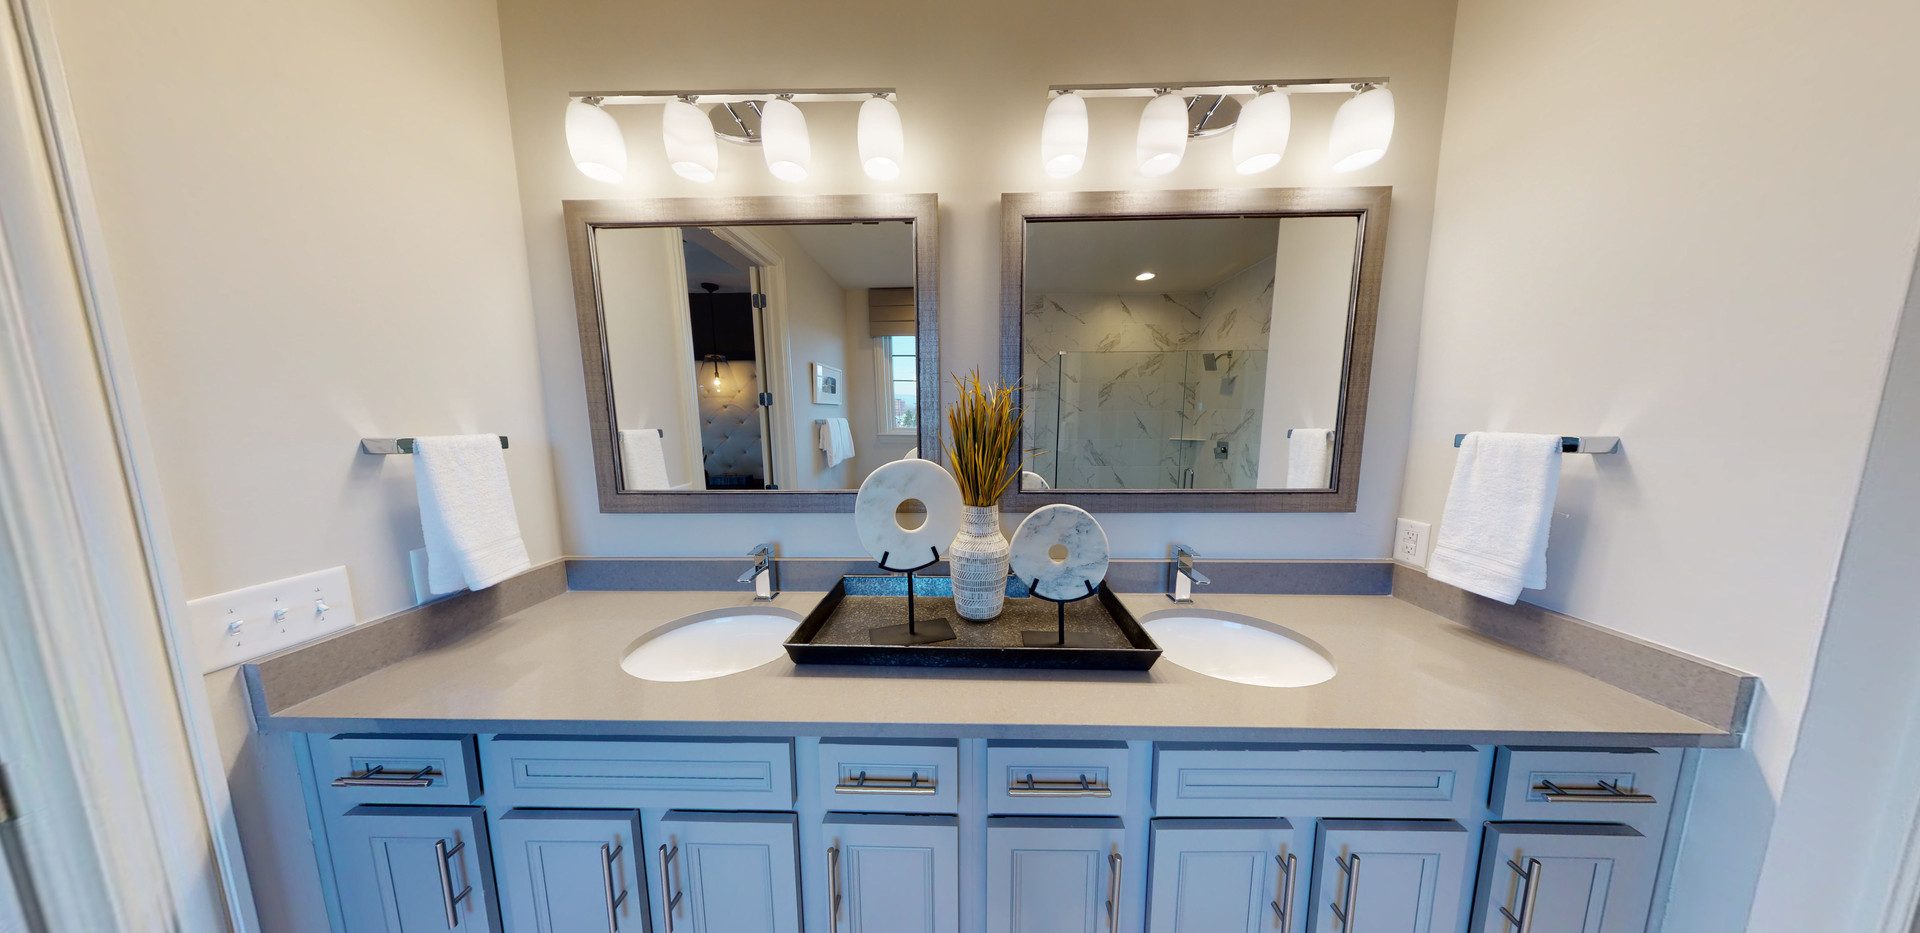 Close up of vanity in a white marble bathroom with double grey vanity, double mirrors with grey frames, and large walk-in closet attached